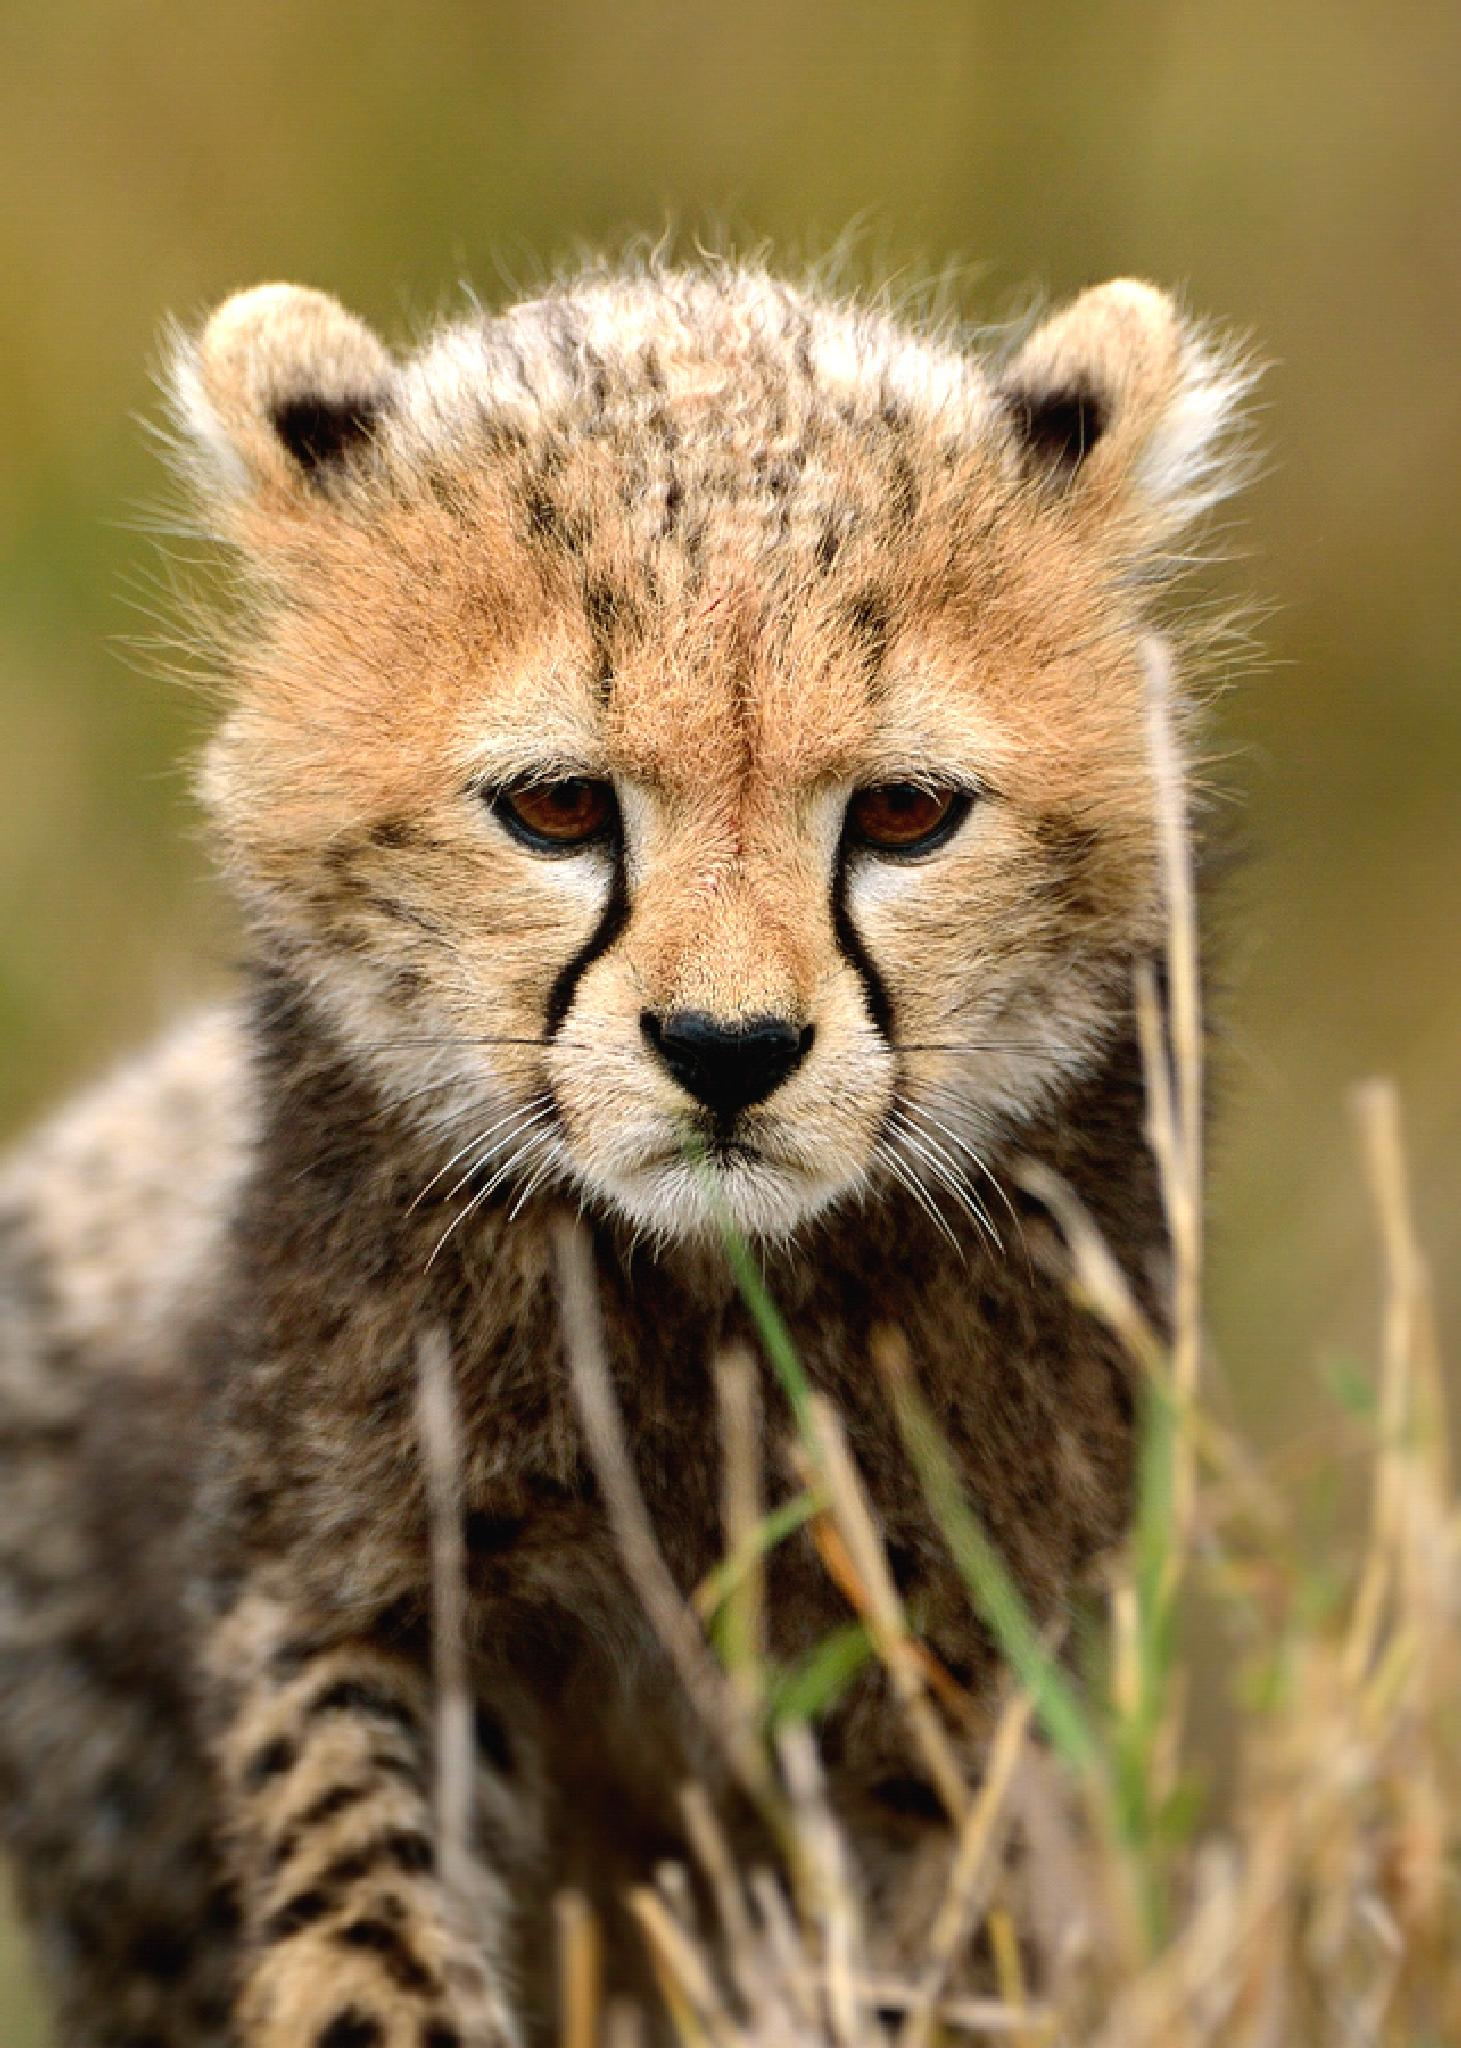 Kenya - baby cheetah by Pascale Froment